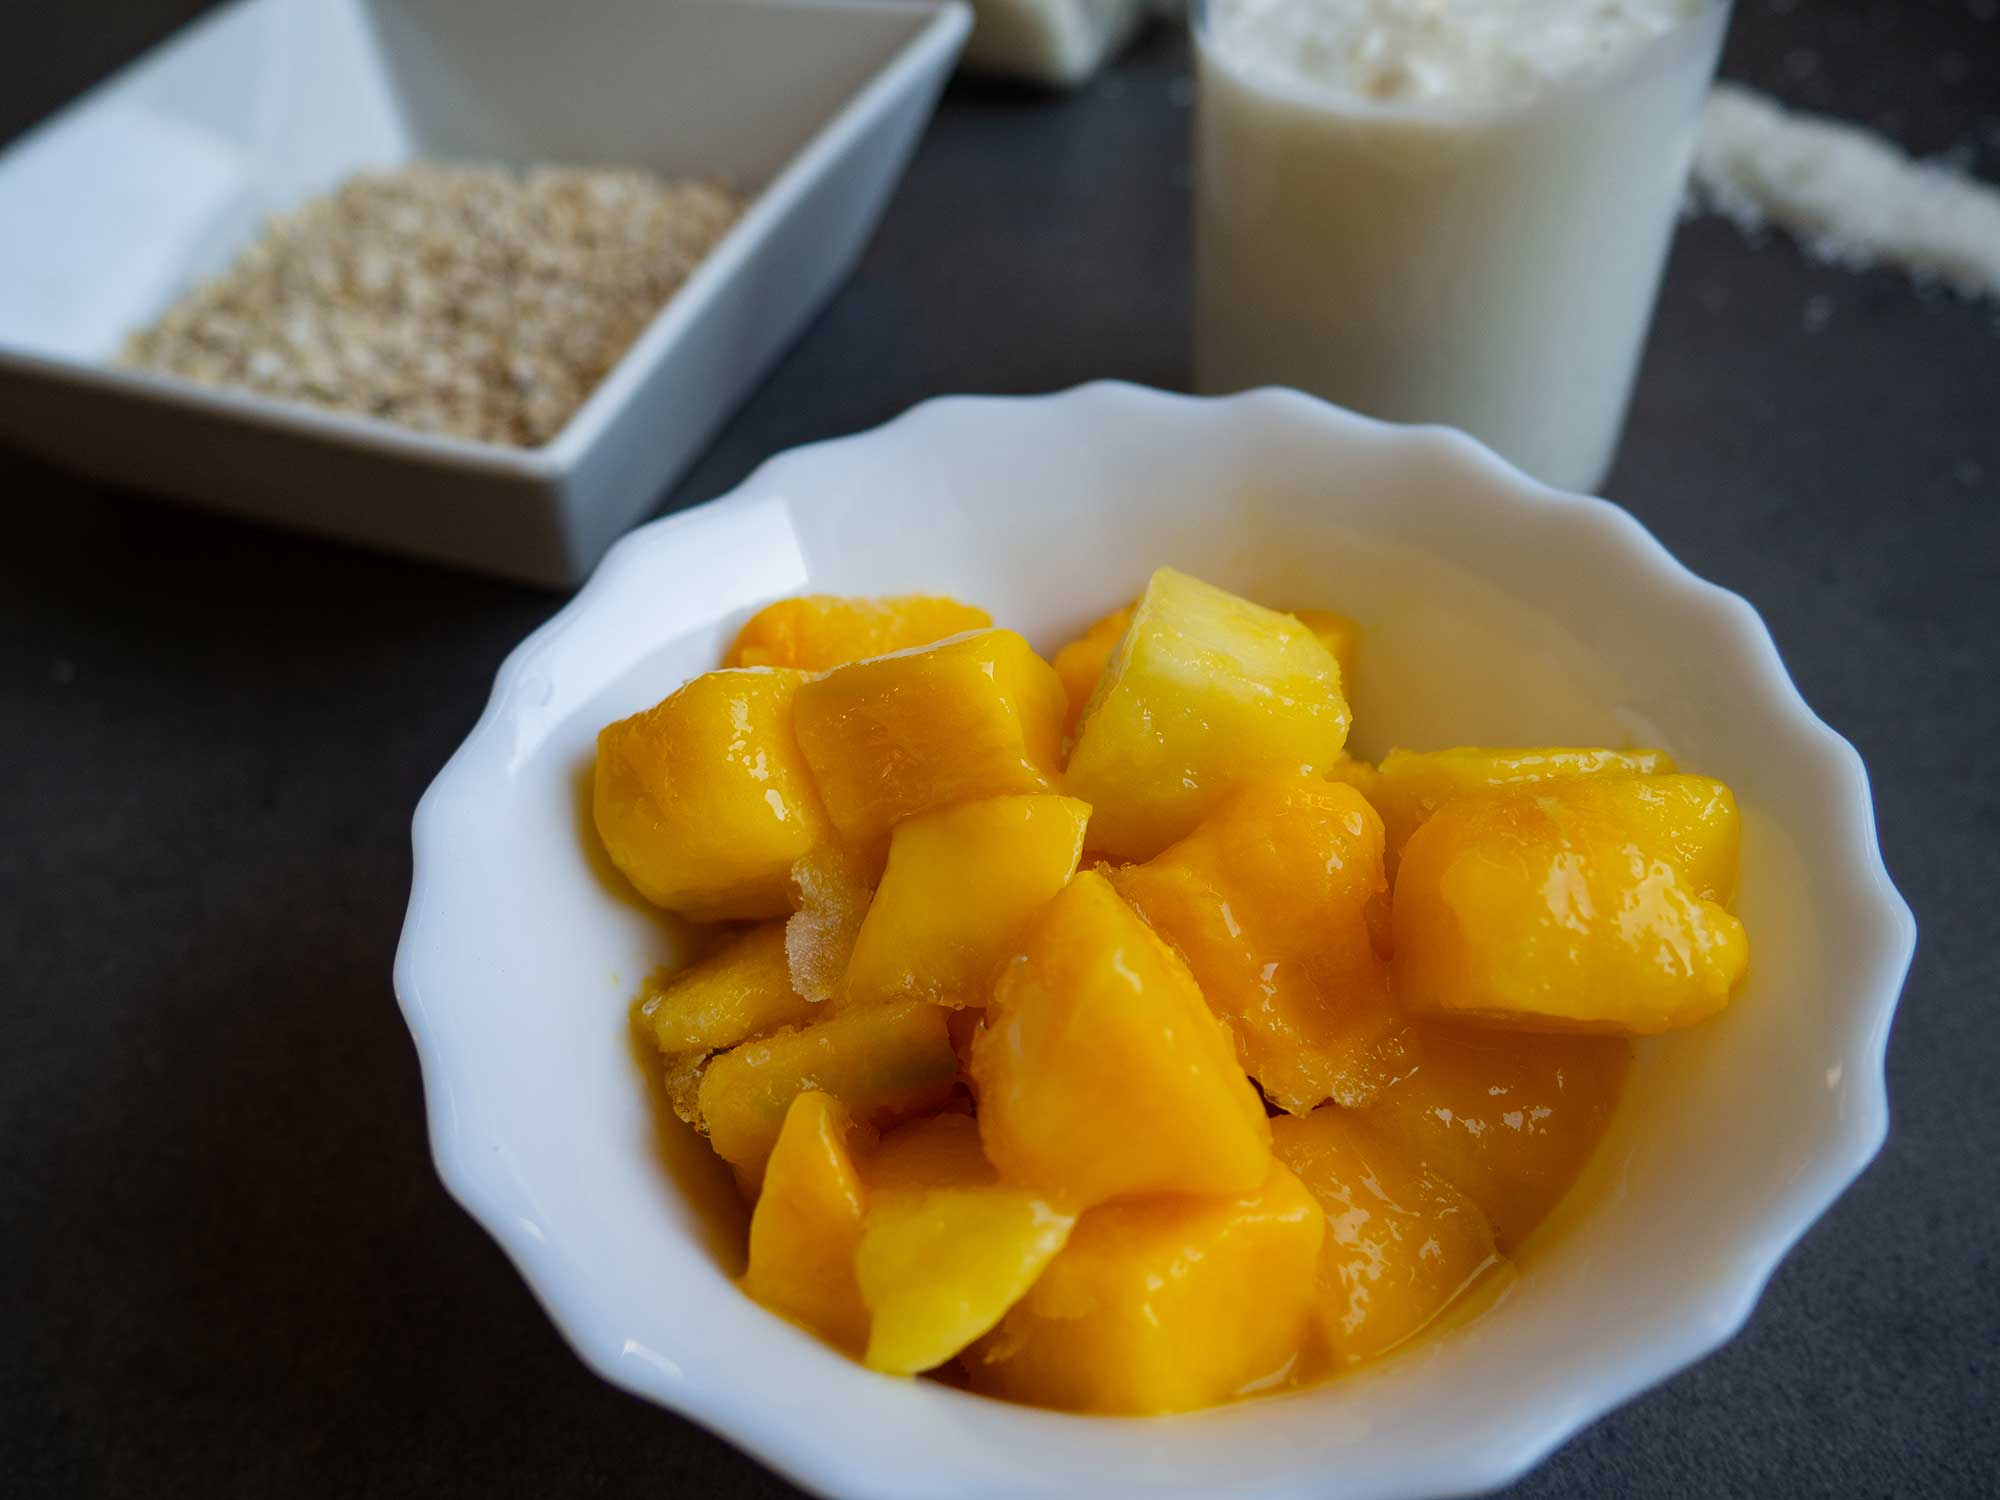 Mango in bowl